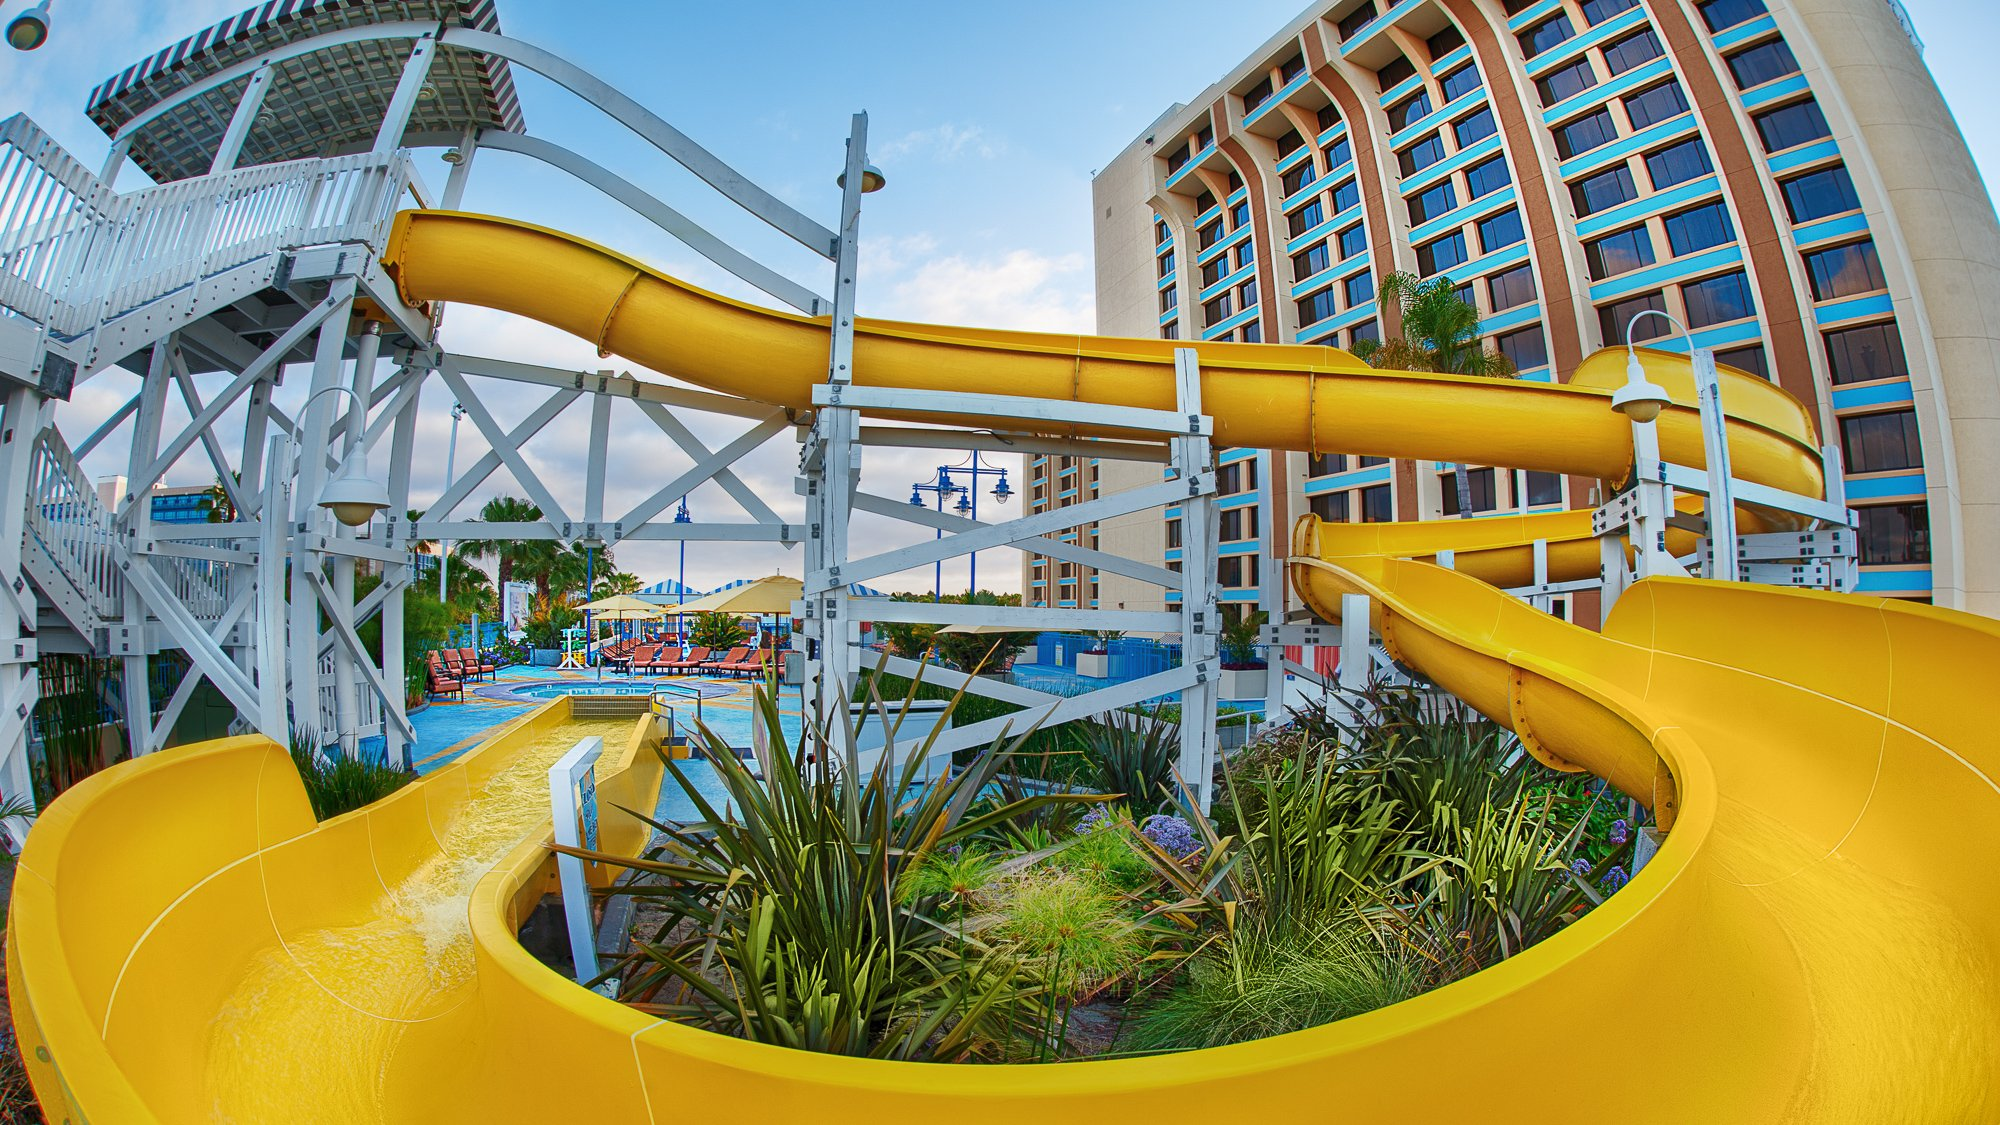 Waterslide at Disney's Paradise Pier Hotel